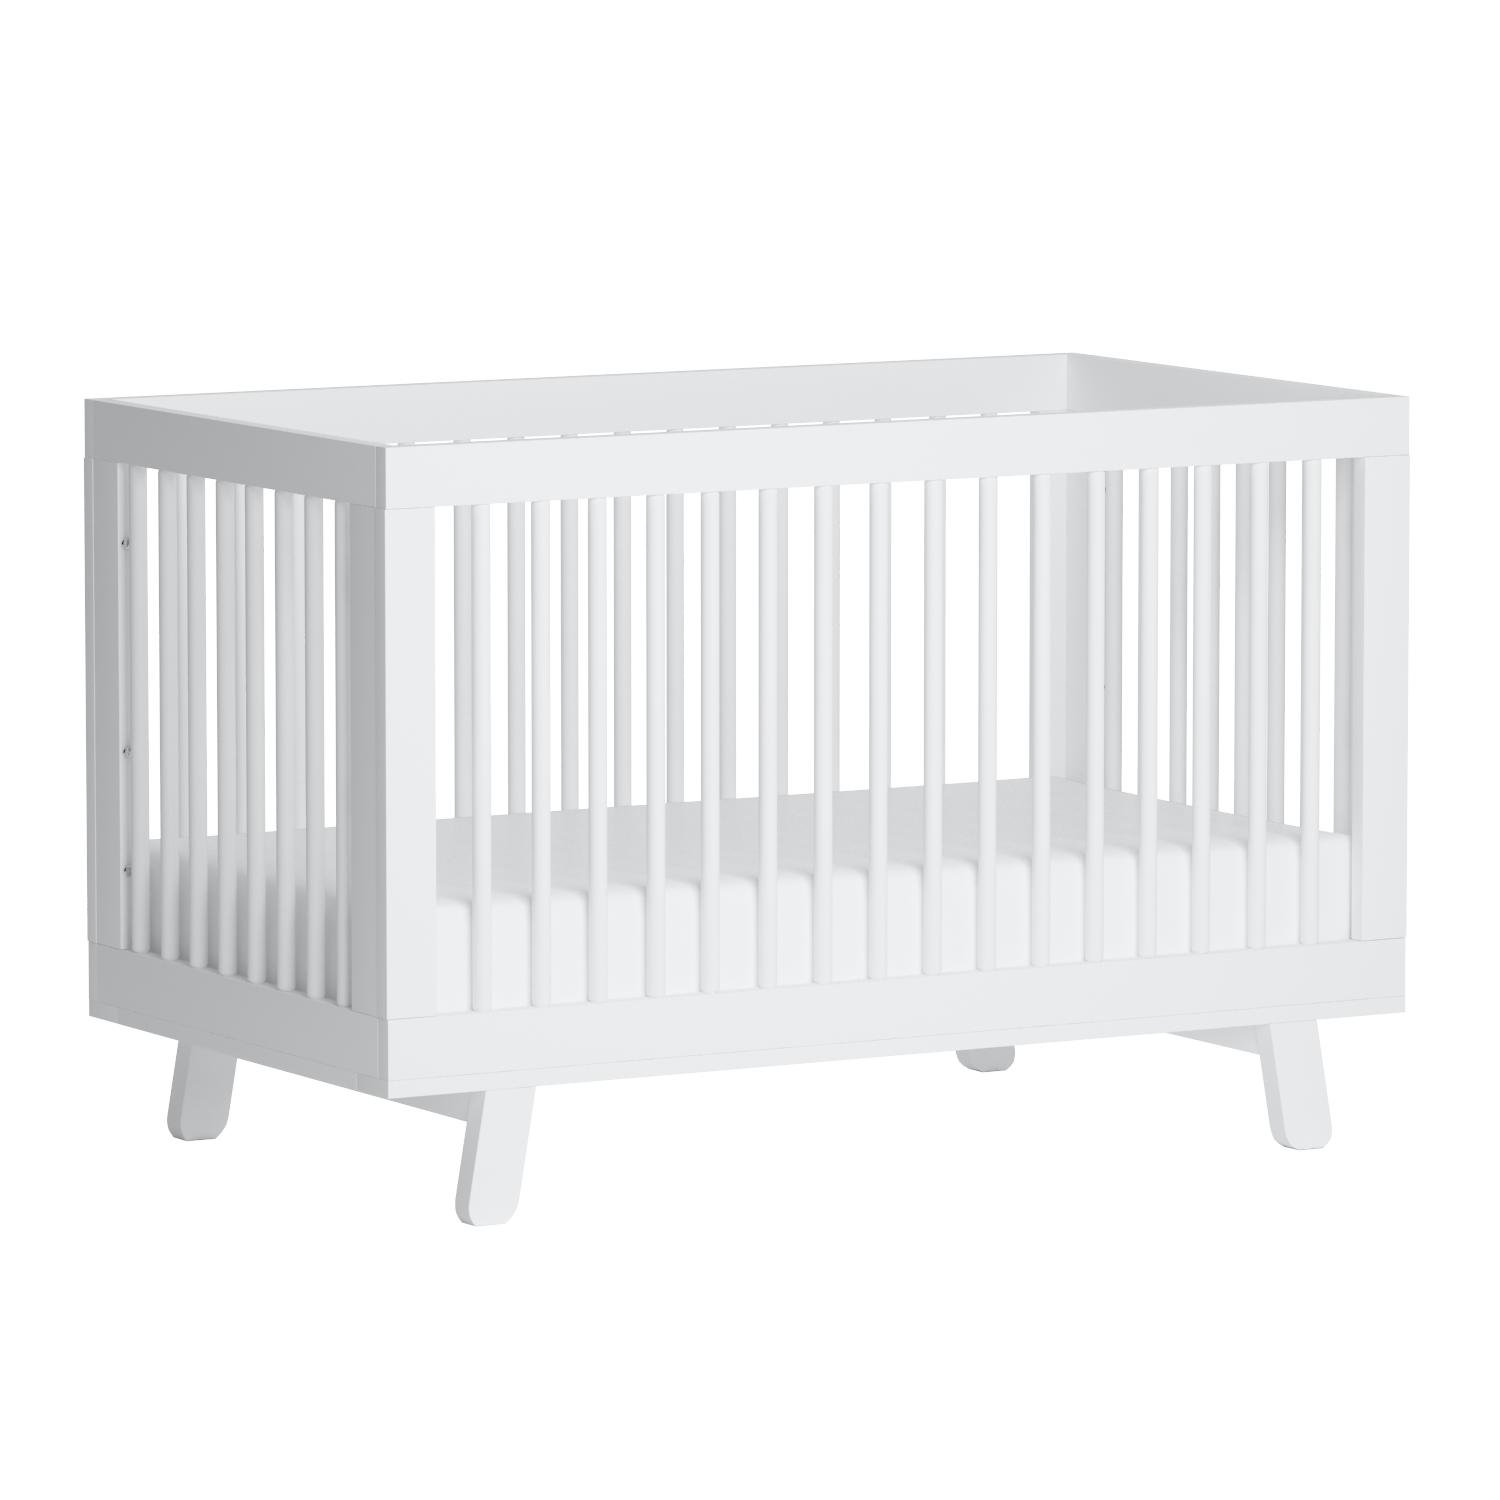 Babyletto Hudson 3-in-1 Convertible Crib with Toddler Bed Conversion Kit, White by babyletto (Image #10)